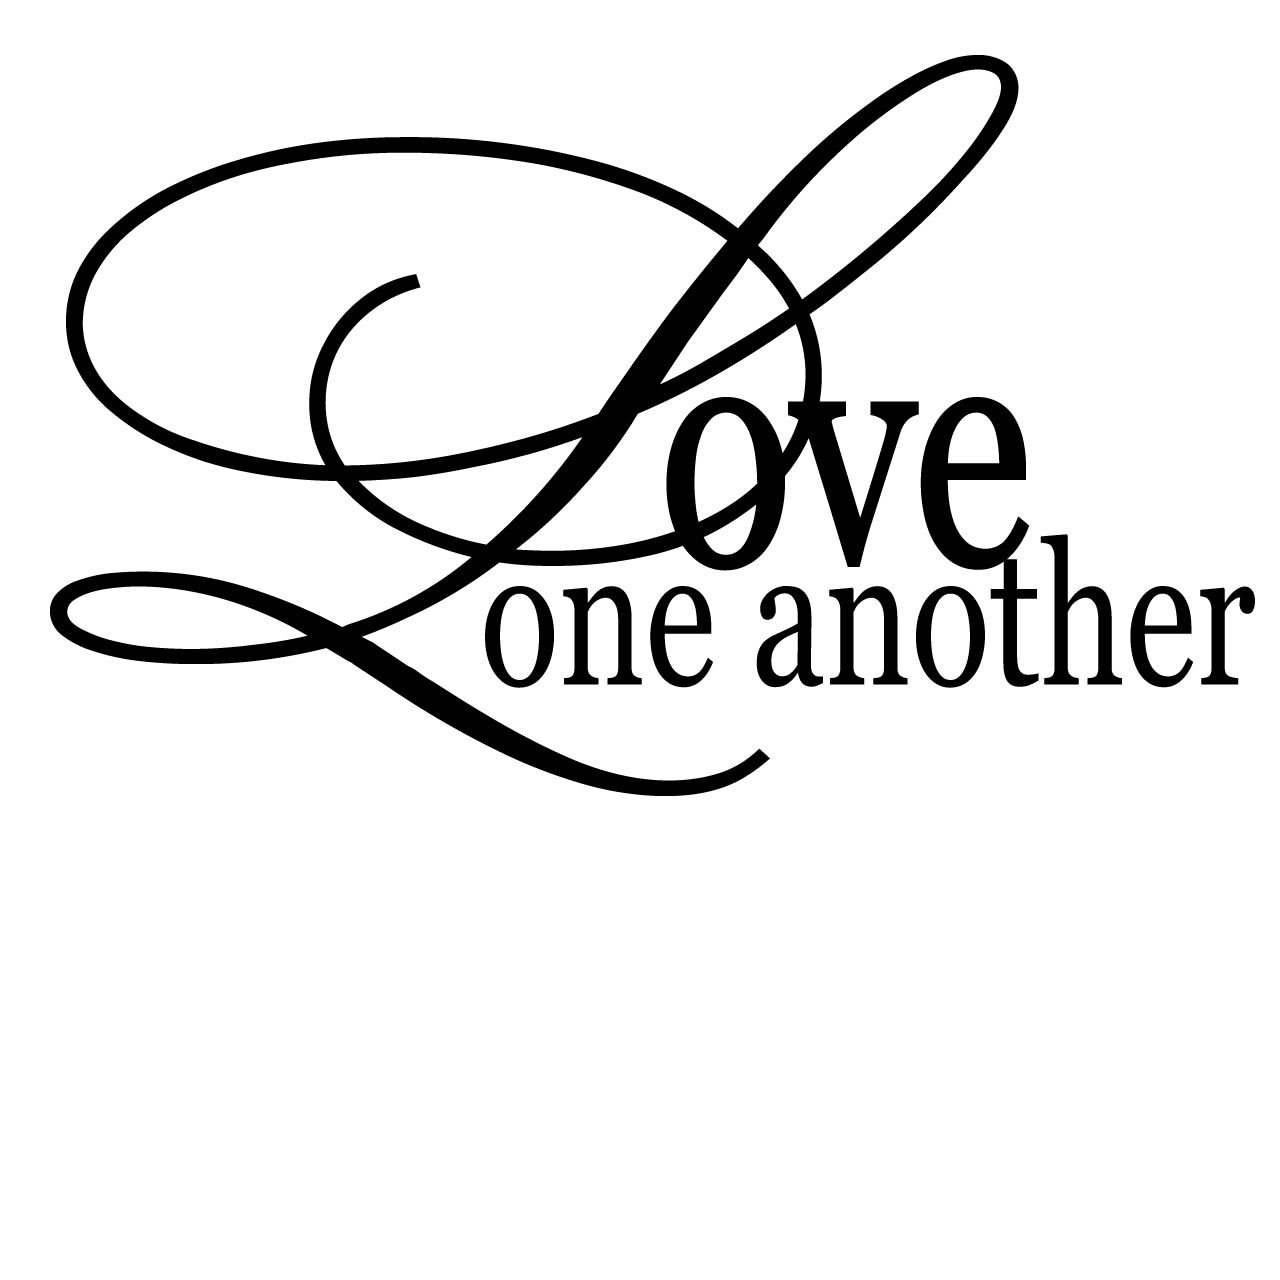 Love One Another Quotes Sayings: Love One Another Quote Wall Sticker / Decal